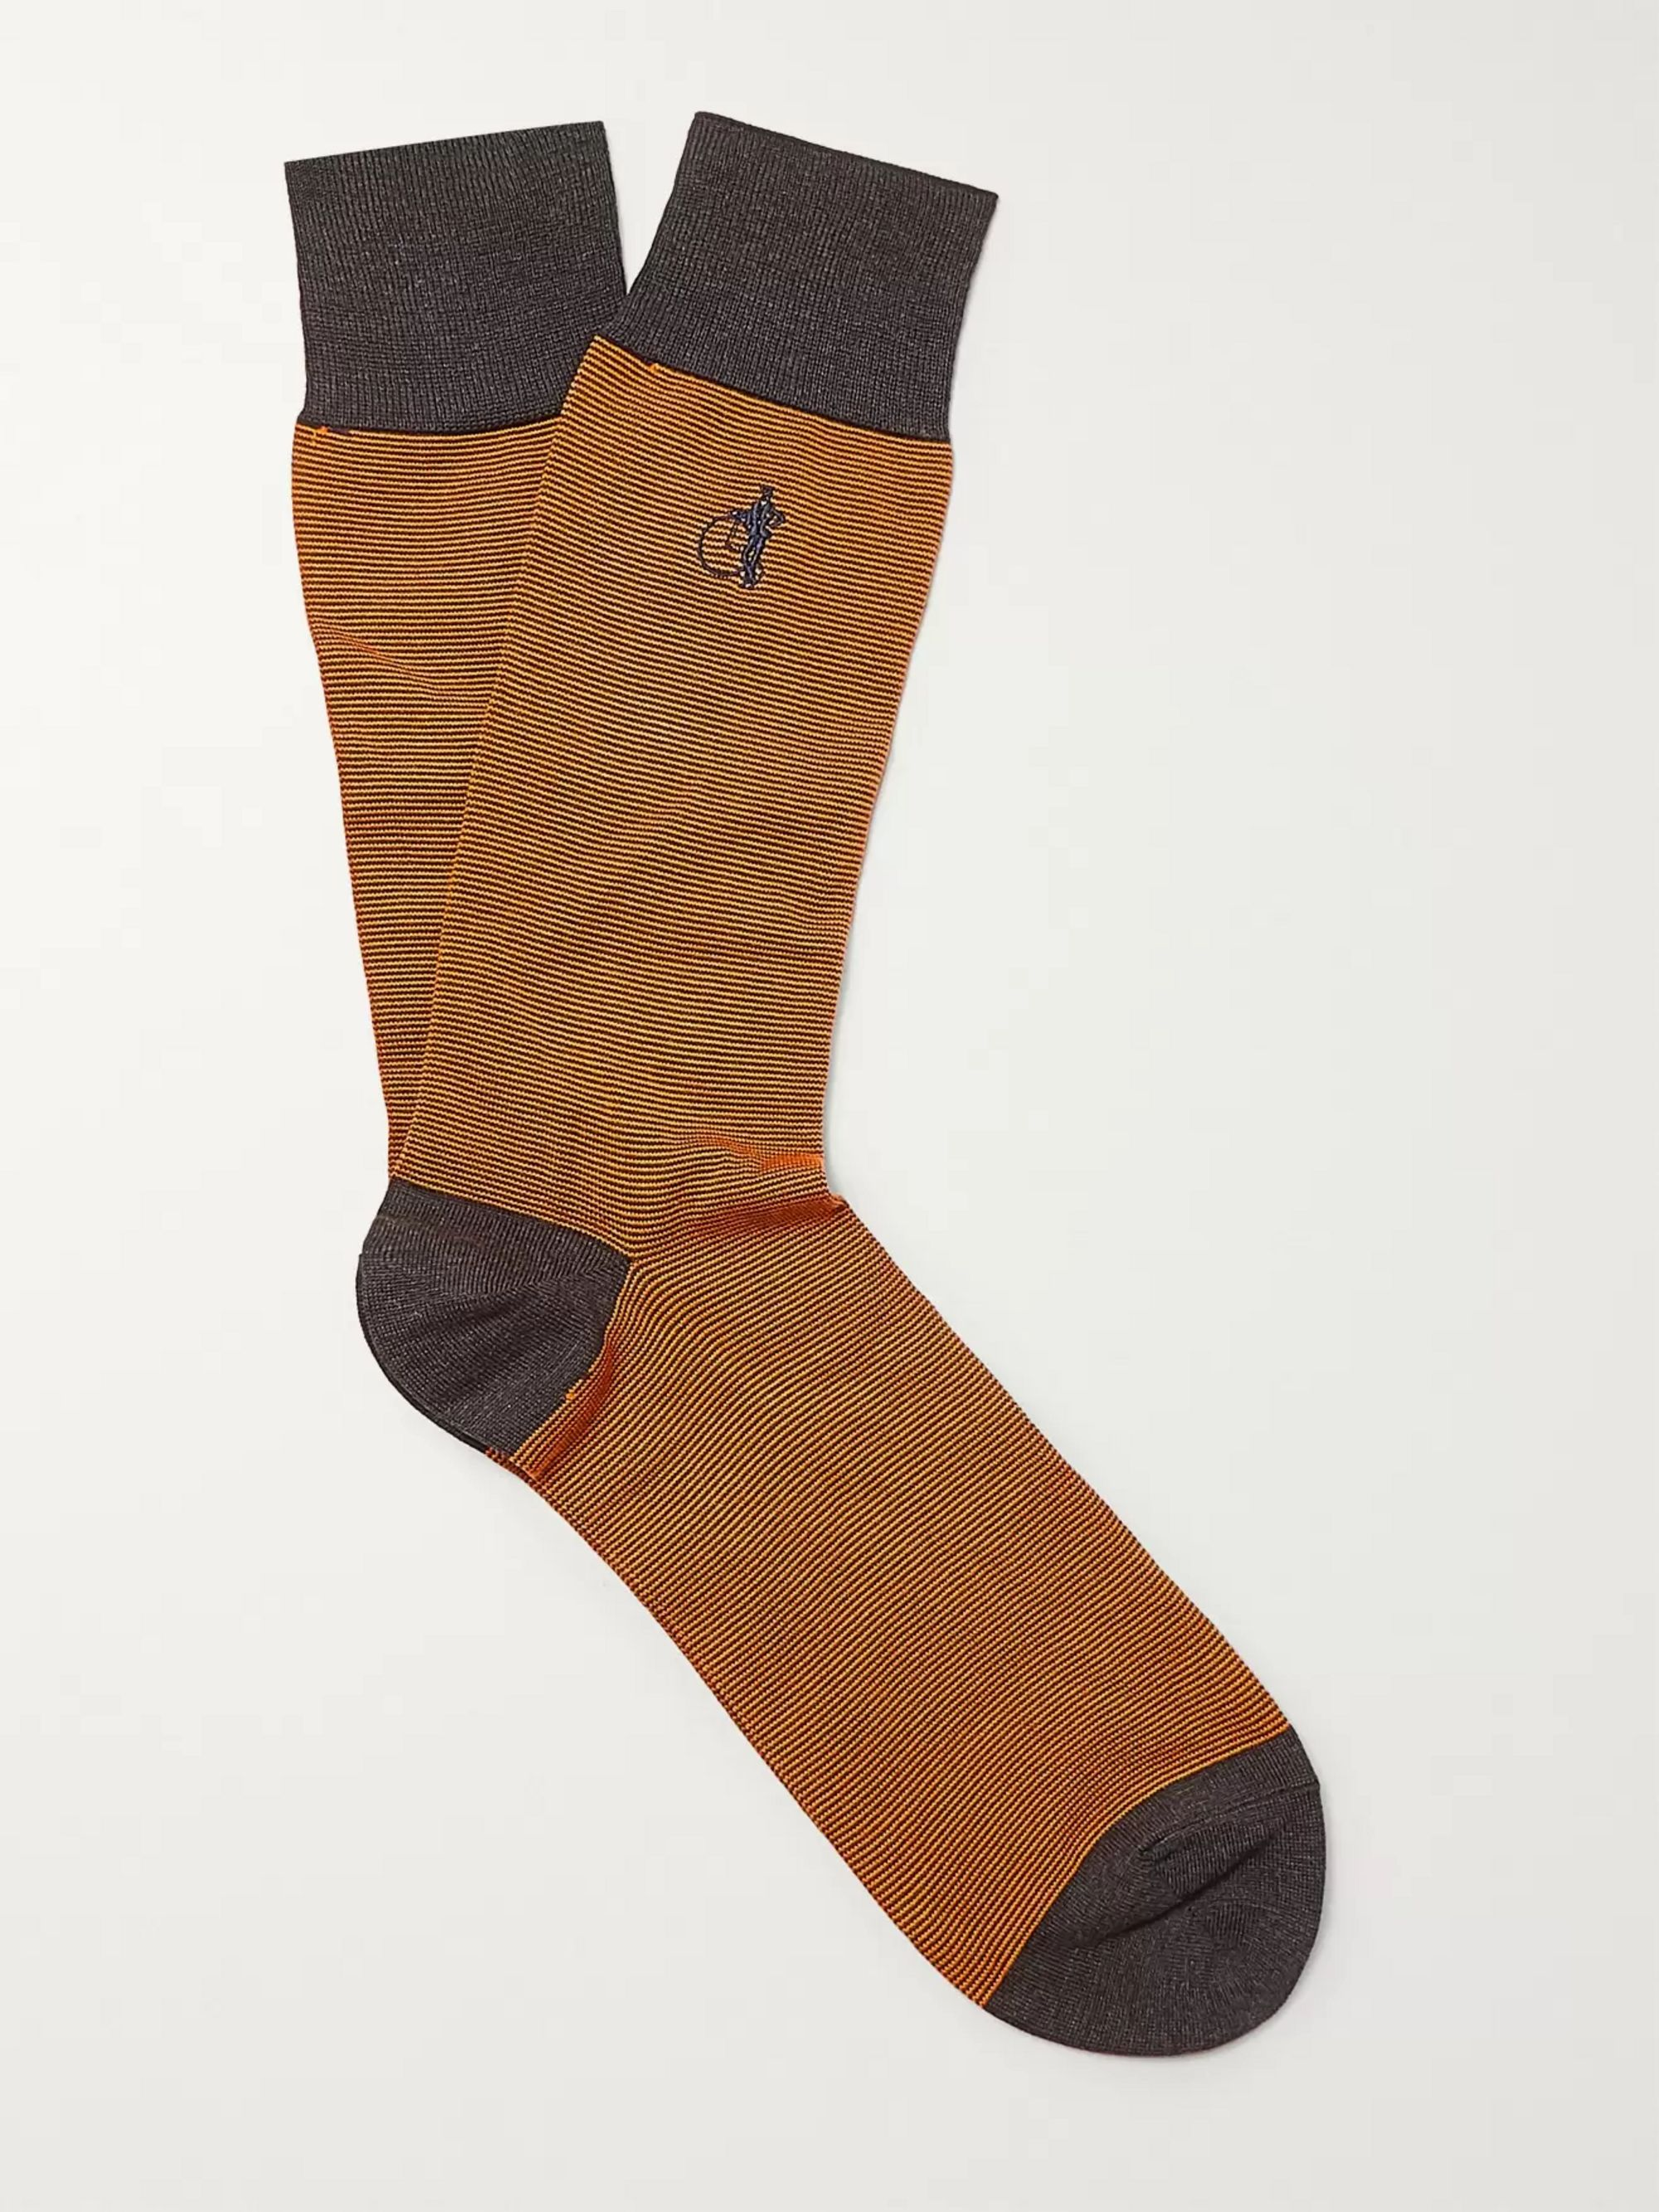 London Sock Co. 15-Pack Cotton-Blend Socks